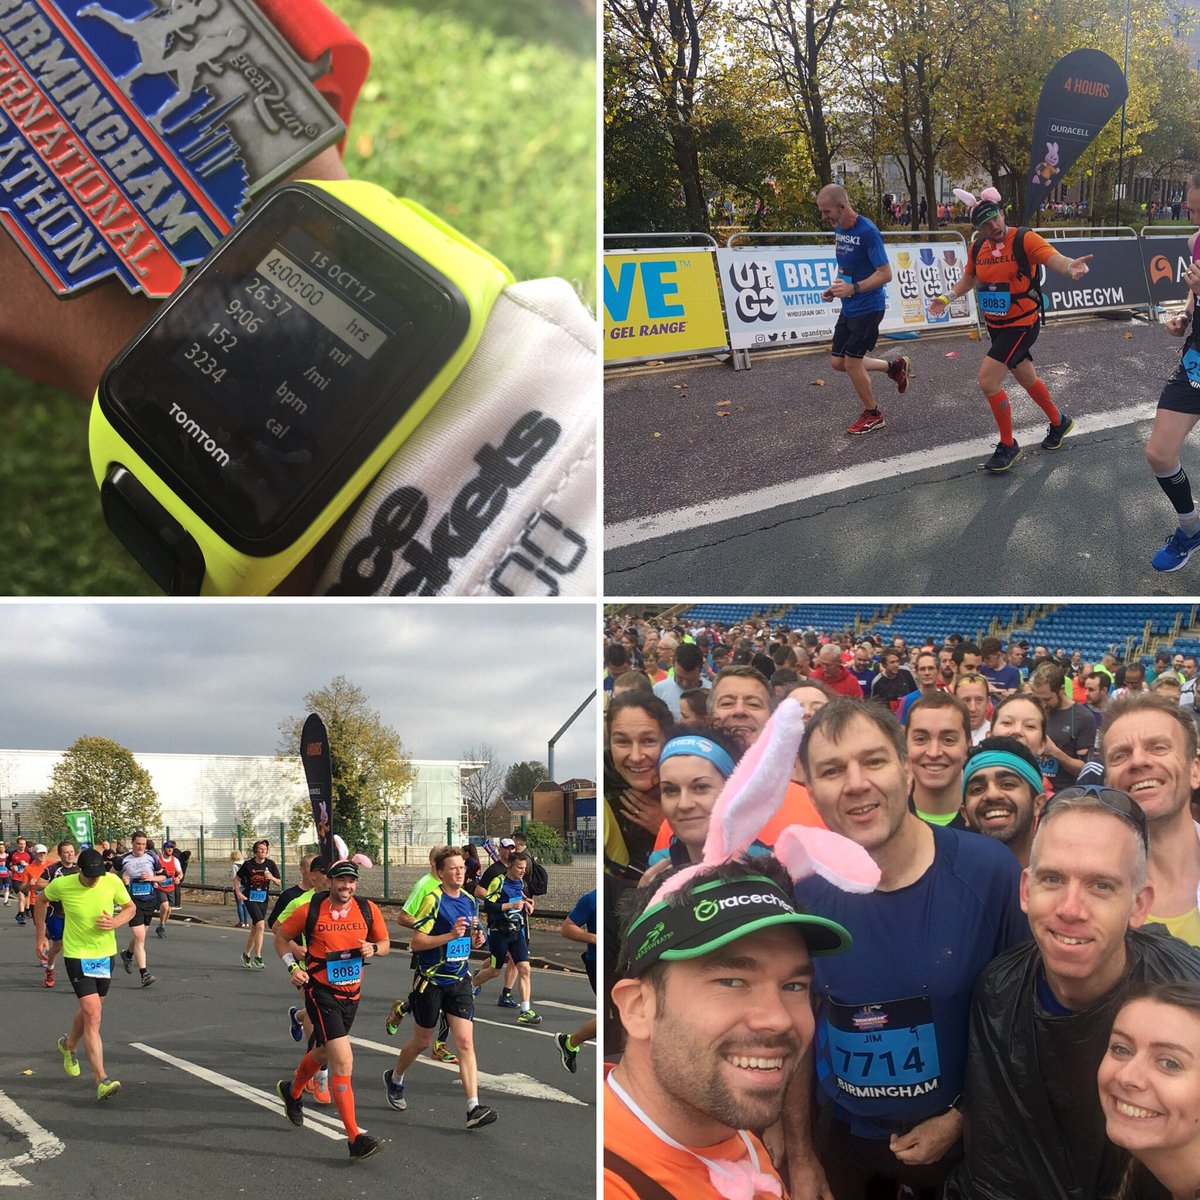 Very happy pacing my 39th event at #BirminghamMarathon pacing sub4 #funbus read all about it here https://t.co/64VLoKia9l #ukRunChat https://t.co/PkgqRkJwpf